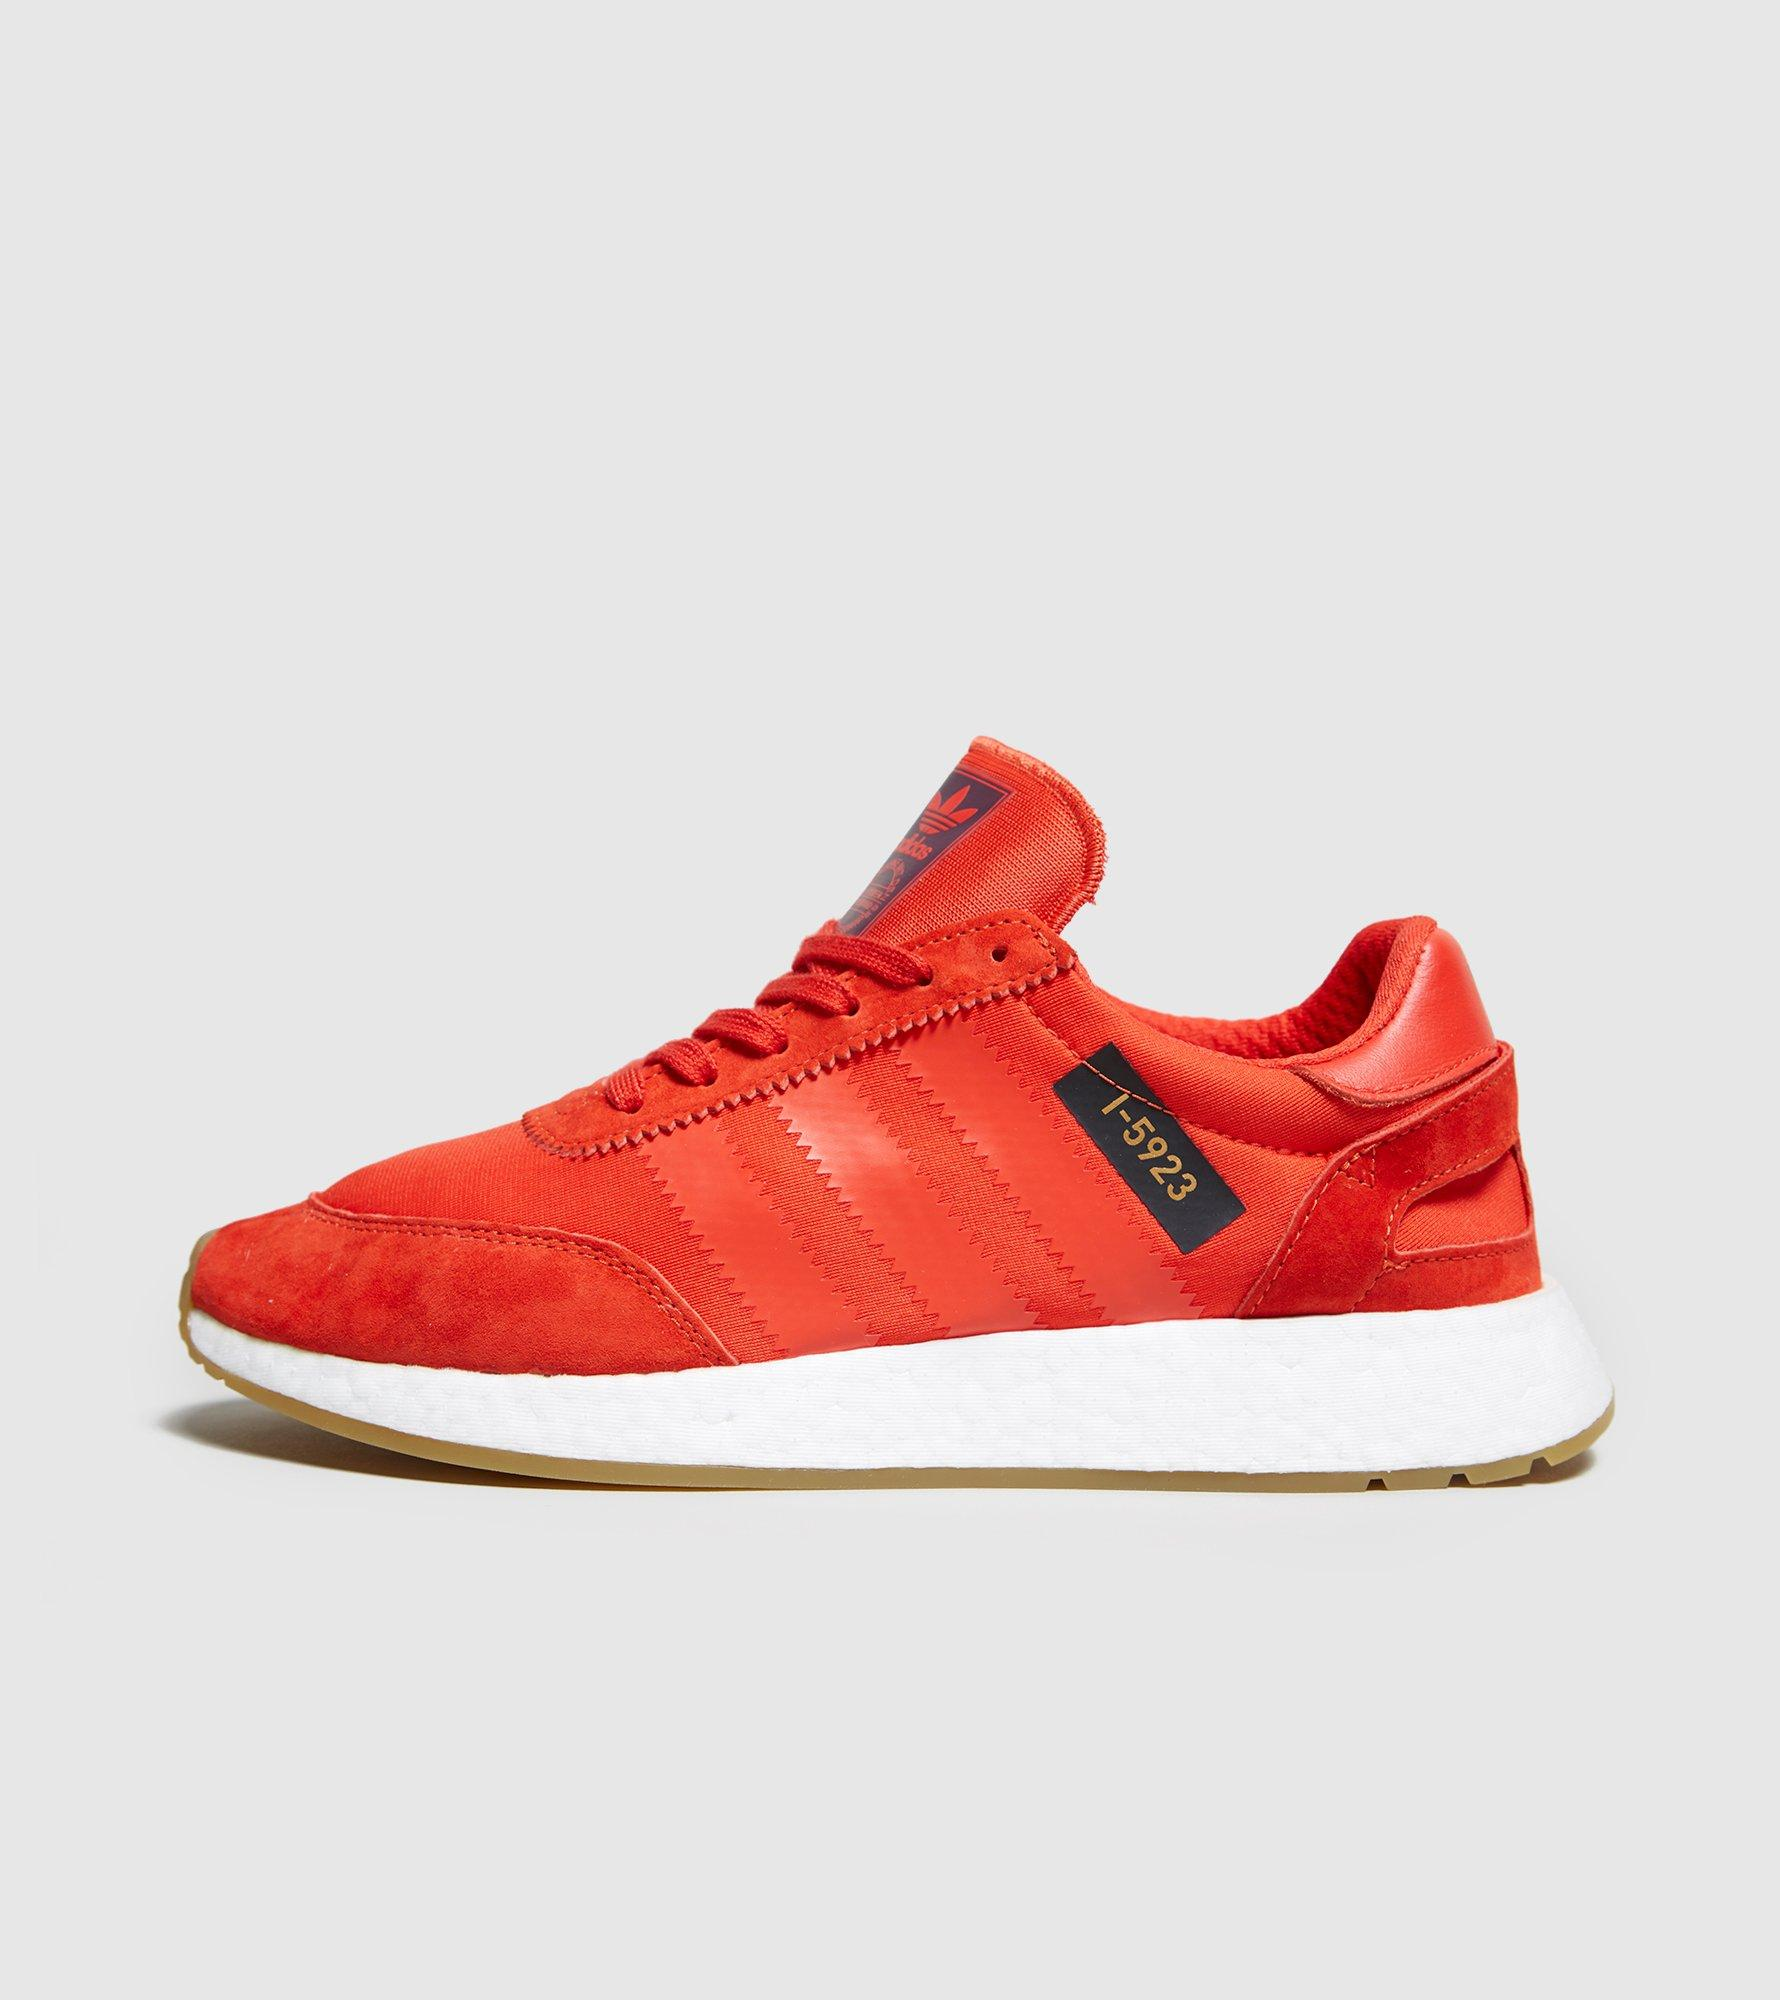 red adidas gazelle mens fashion 2017 images adidas nmd r2 women size 85